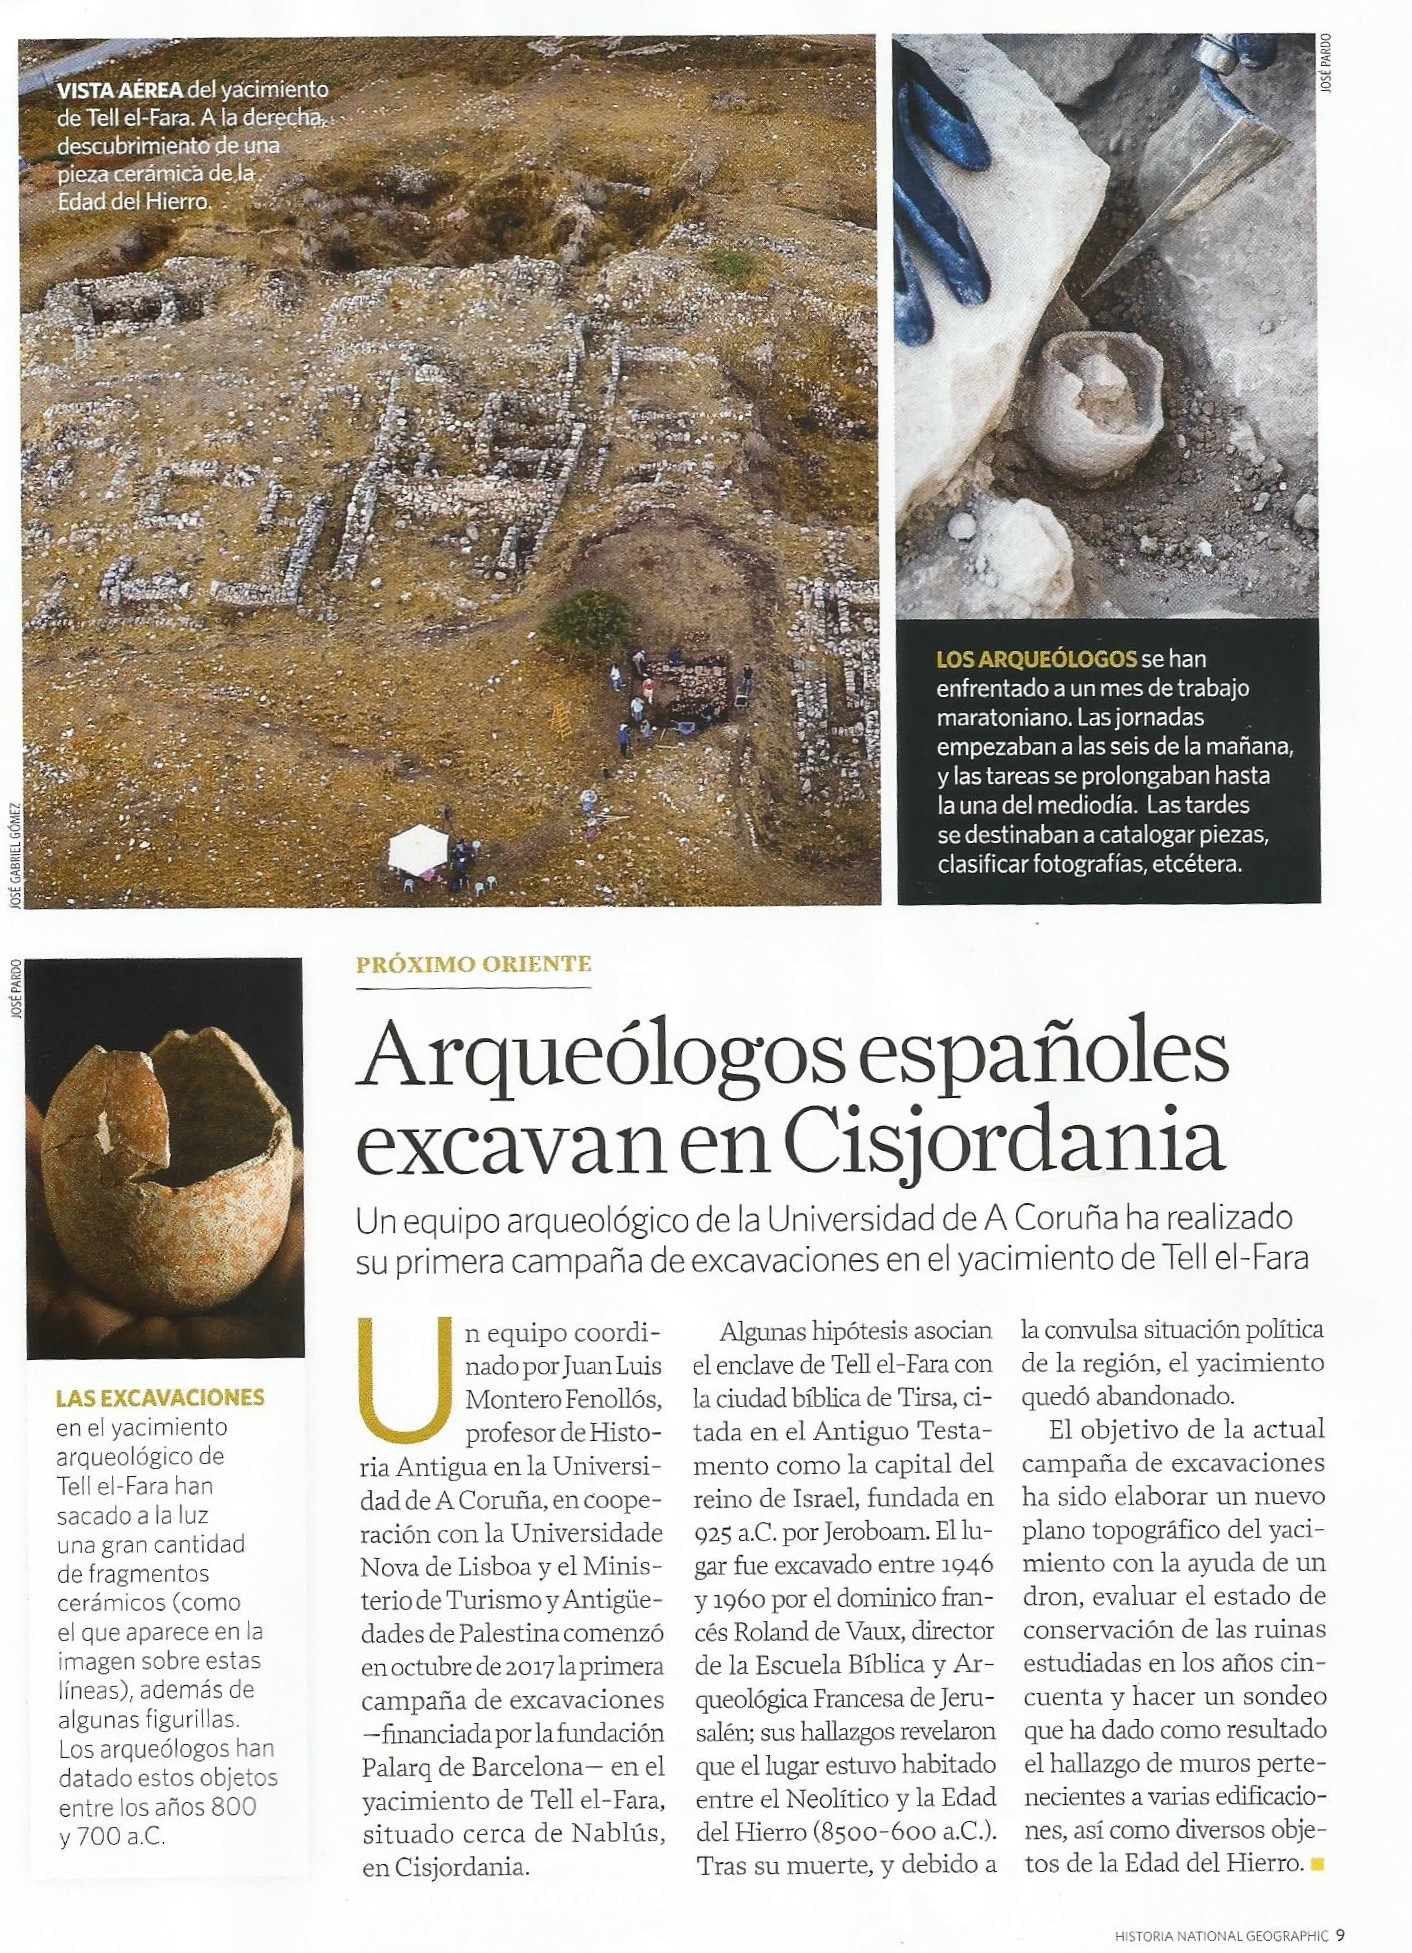 Historia National Geographic - Nº 169, page 92017